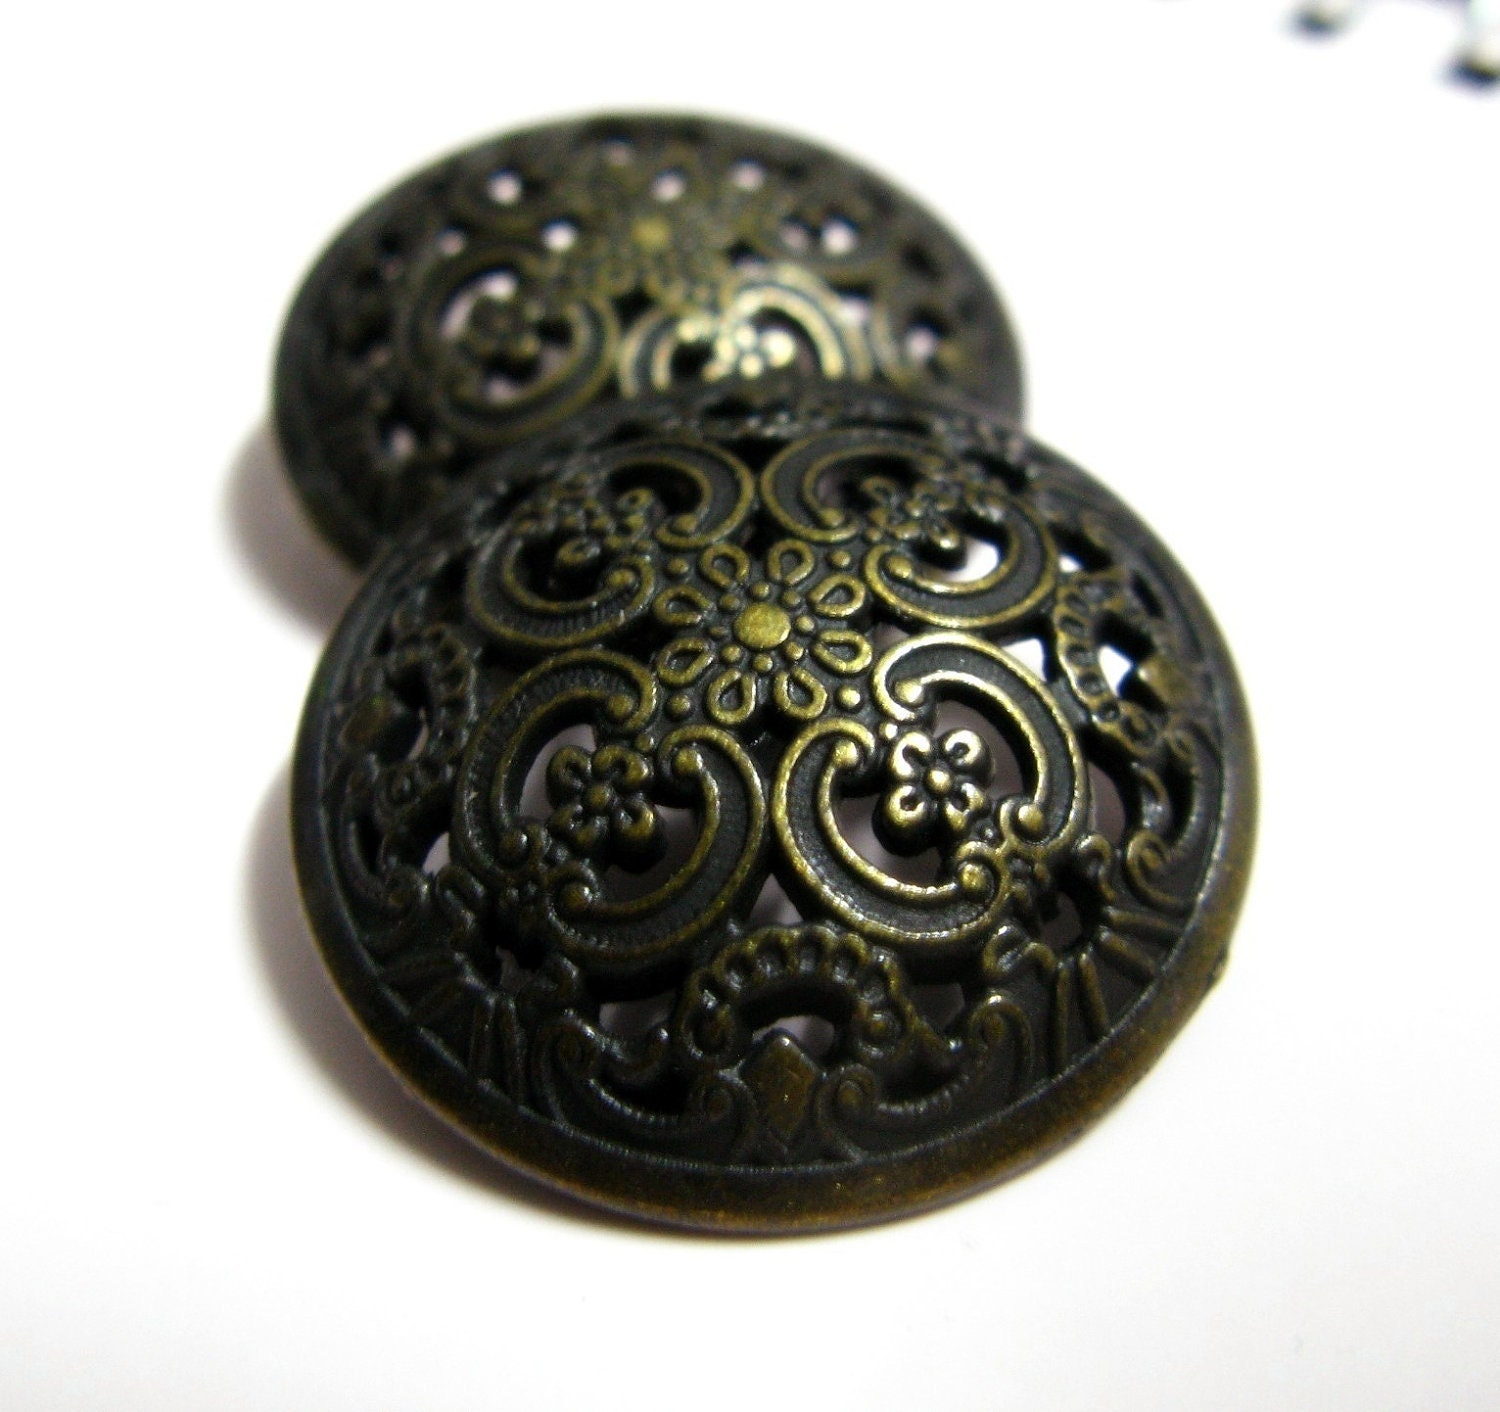 Metal Buttons Opeowork Floral Engraving Metal Buttons